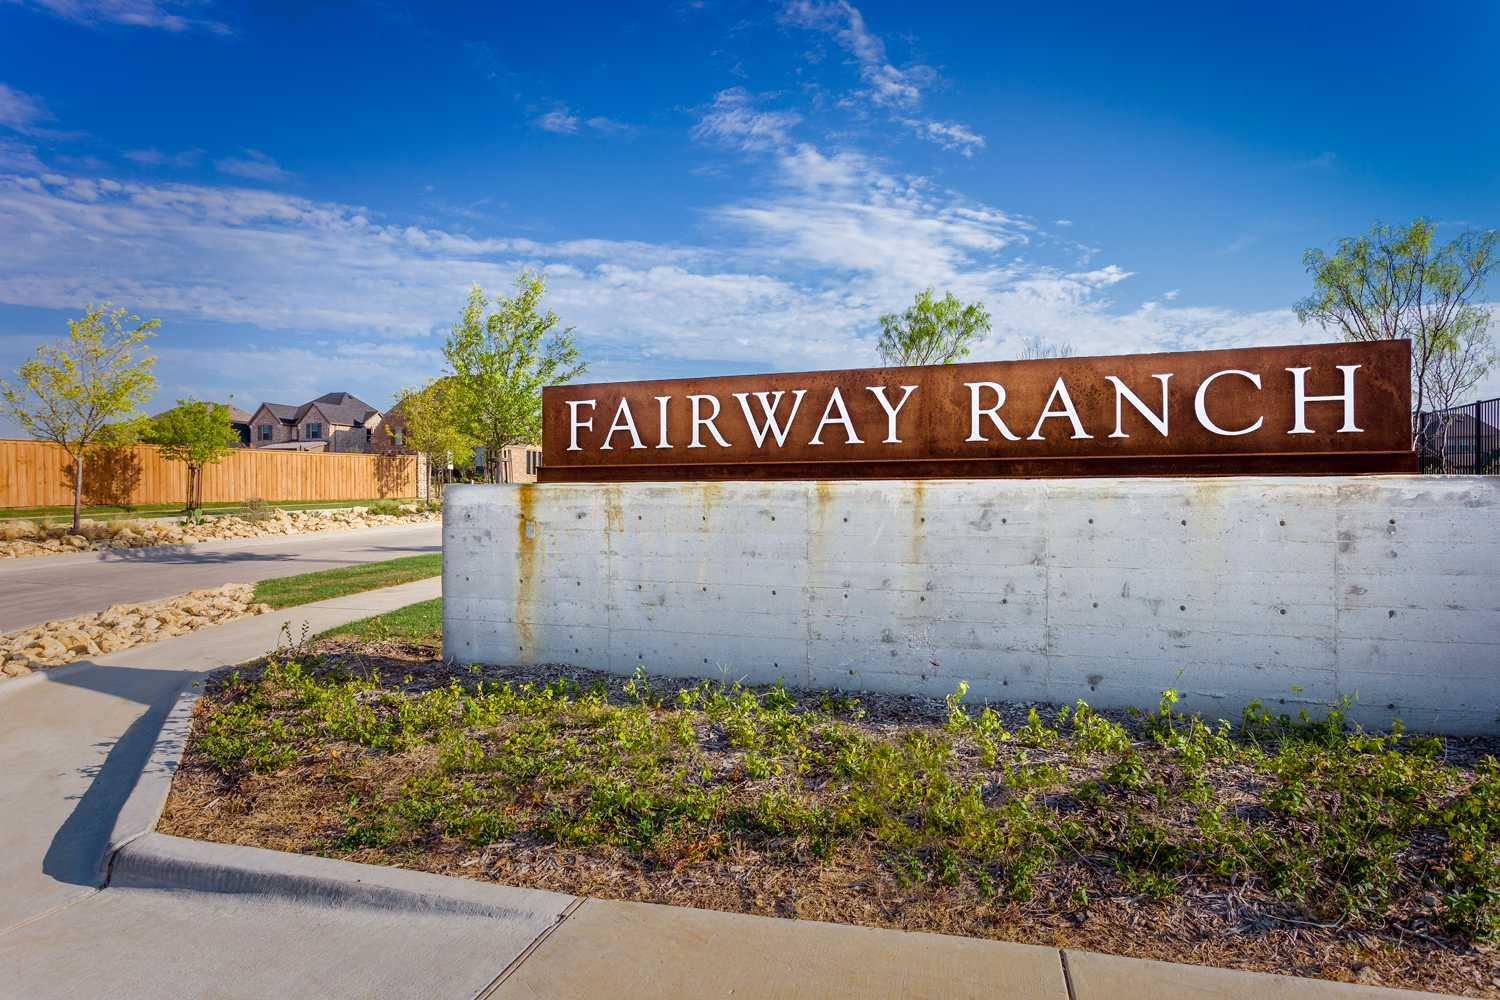 Fairway Ranch